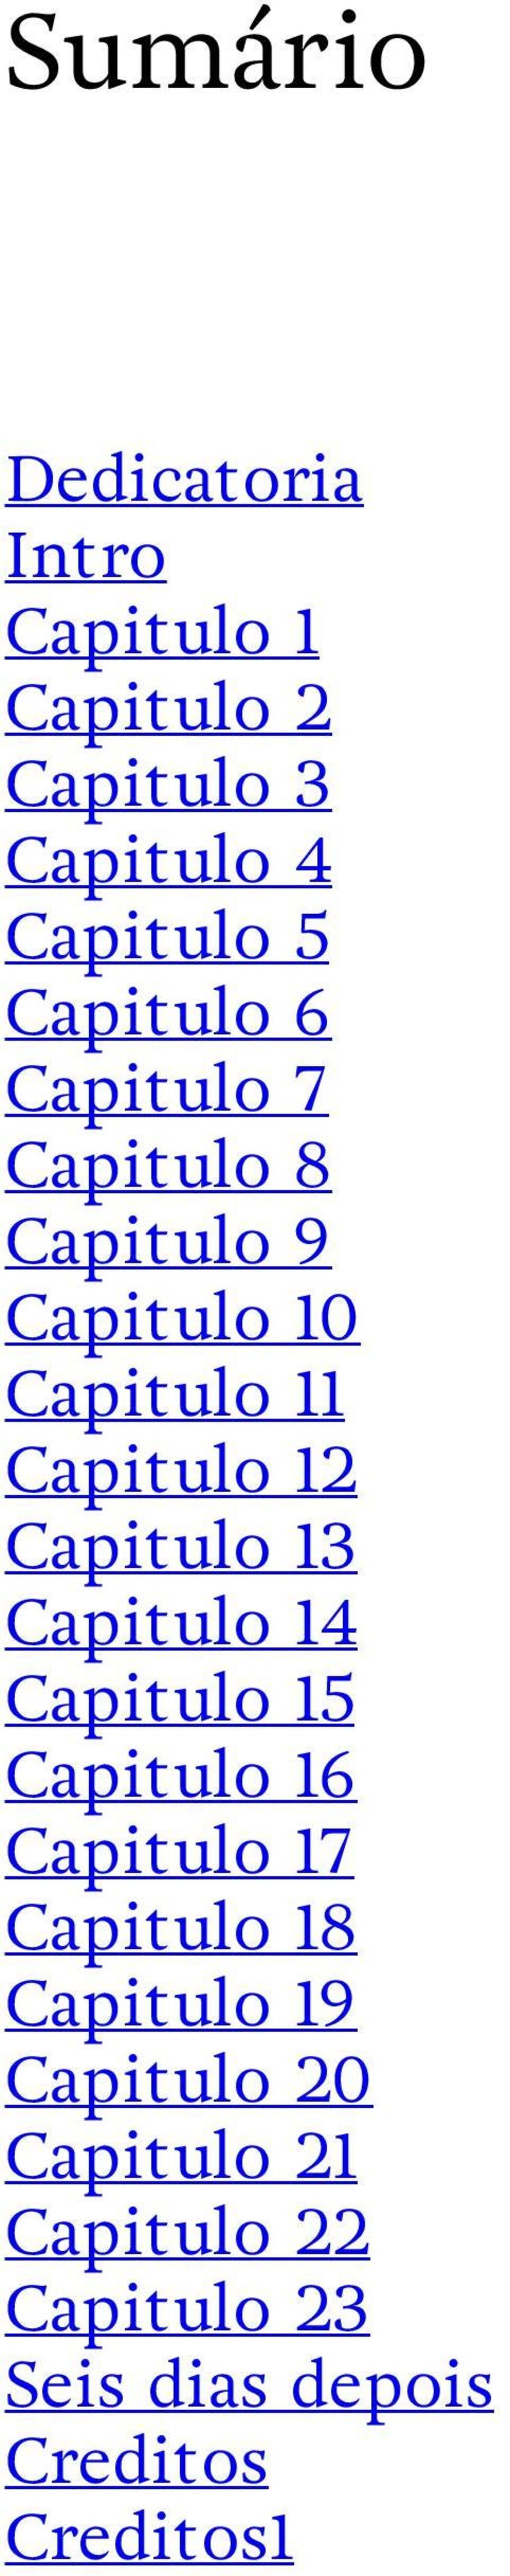 Capitulo 13 Capitulo 14 Capitulo 15 Capitulo 16 Capitulo 17 Capitulo 18 Capitulo